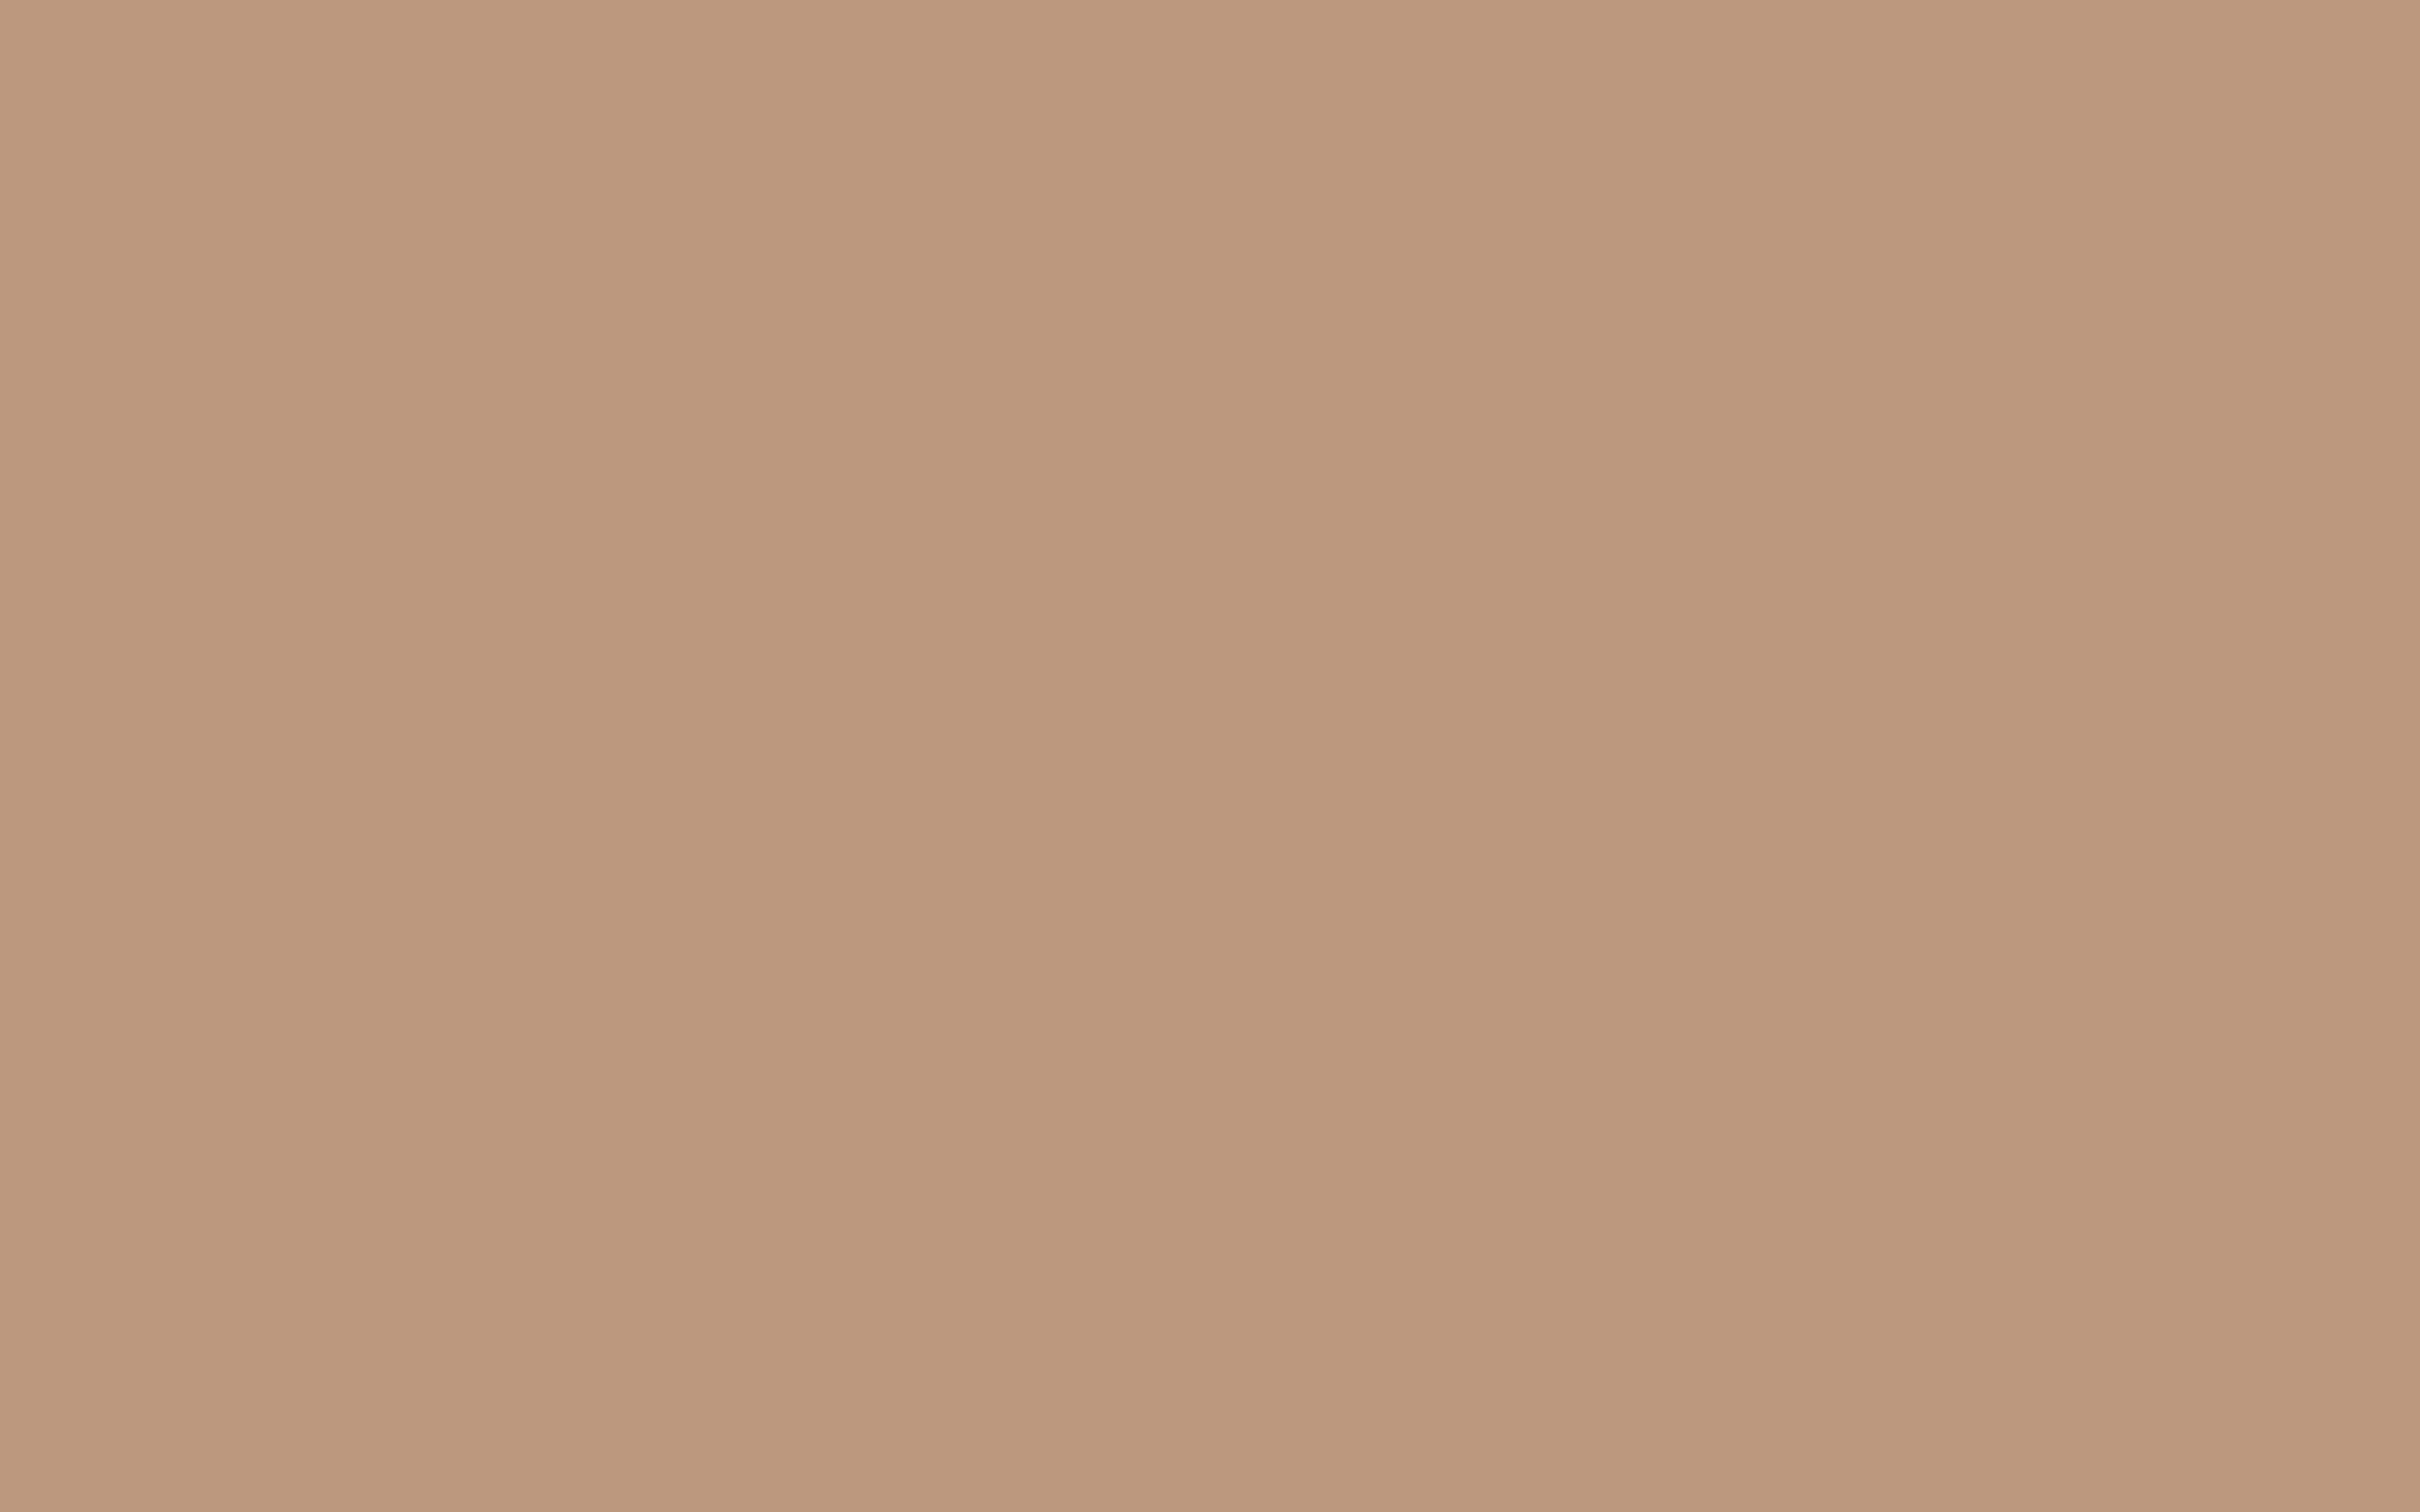 2880x1800 Pale Taupe Solid Color Background